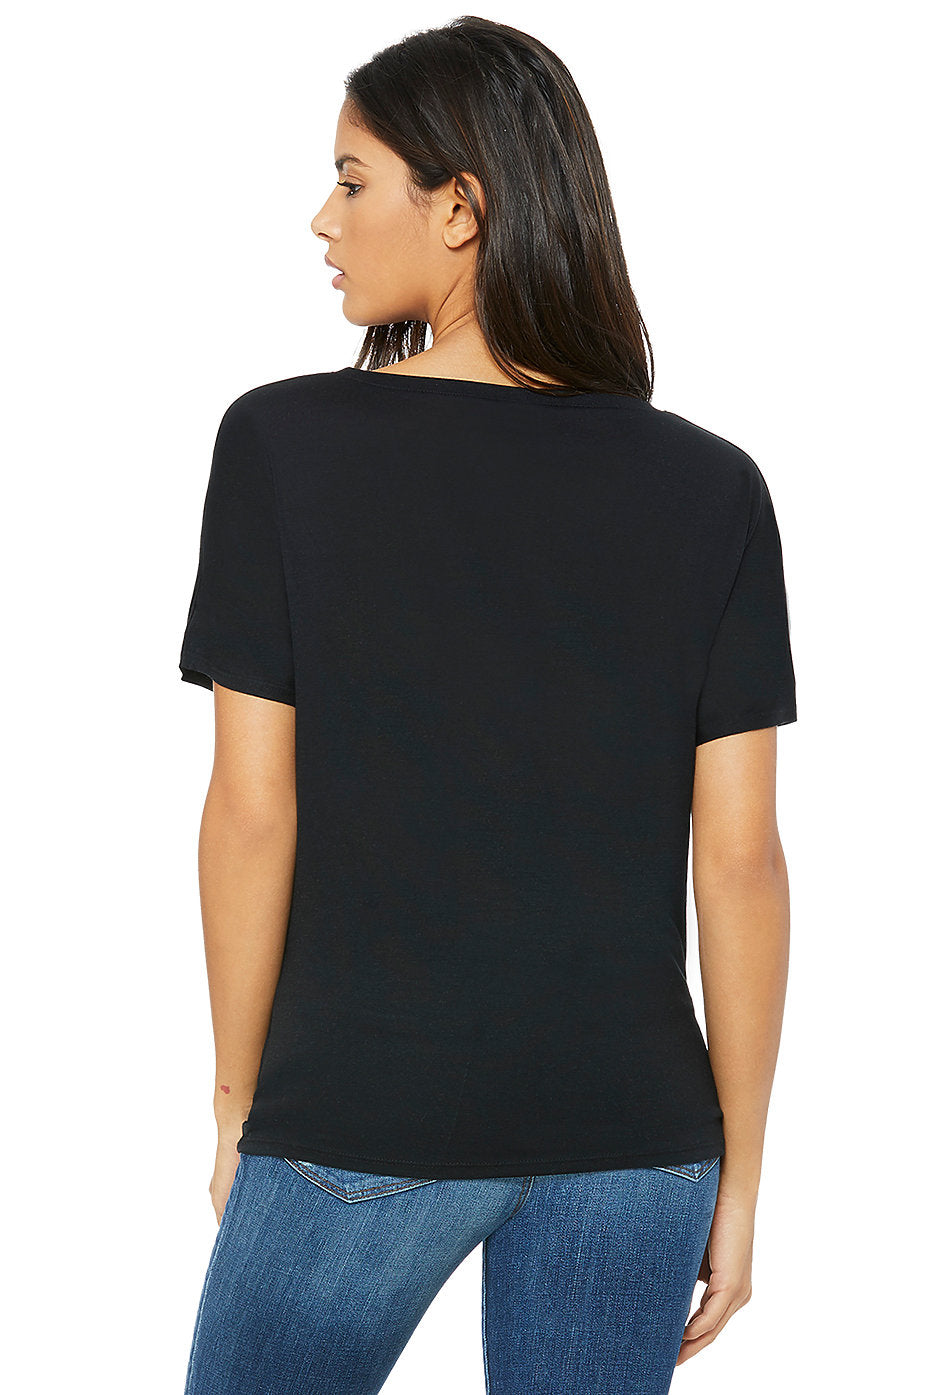 Perfectly Imperfect - Diamond - Slouchy & Soft V Neck T-shirt by Midwinter Co.